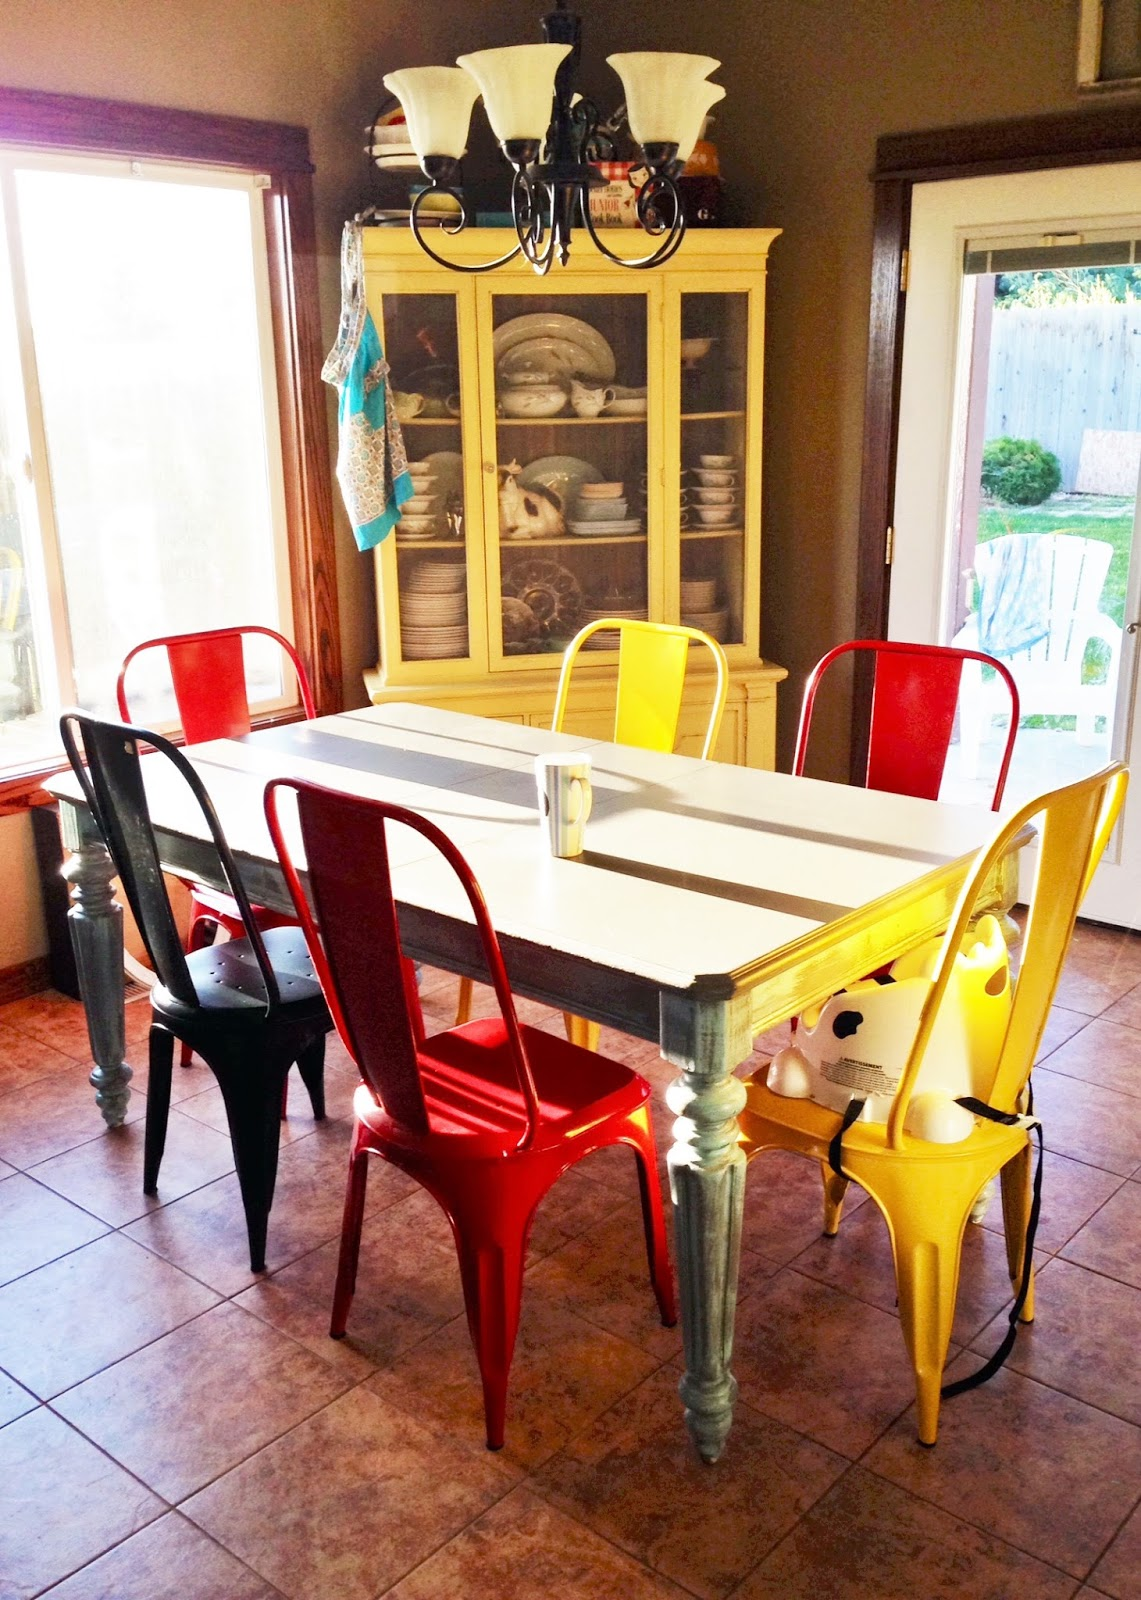 wall chair stock painted the serving room dining hatch chairs with table yellow in bright and photo